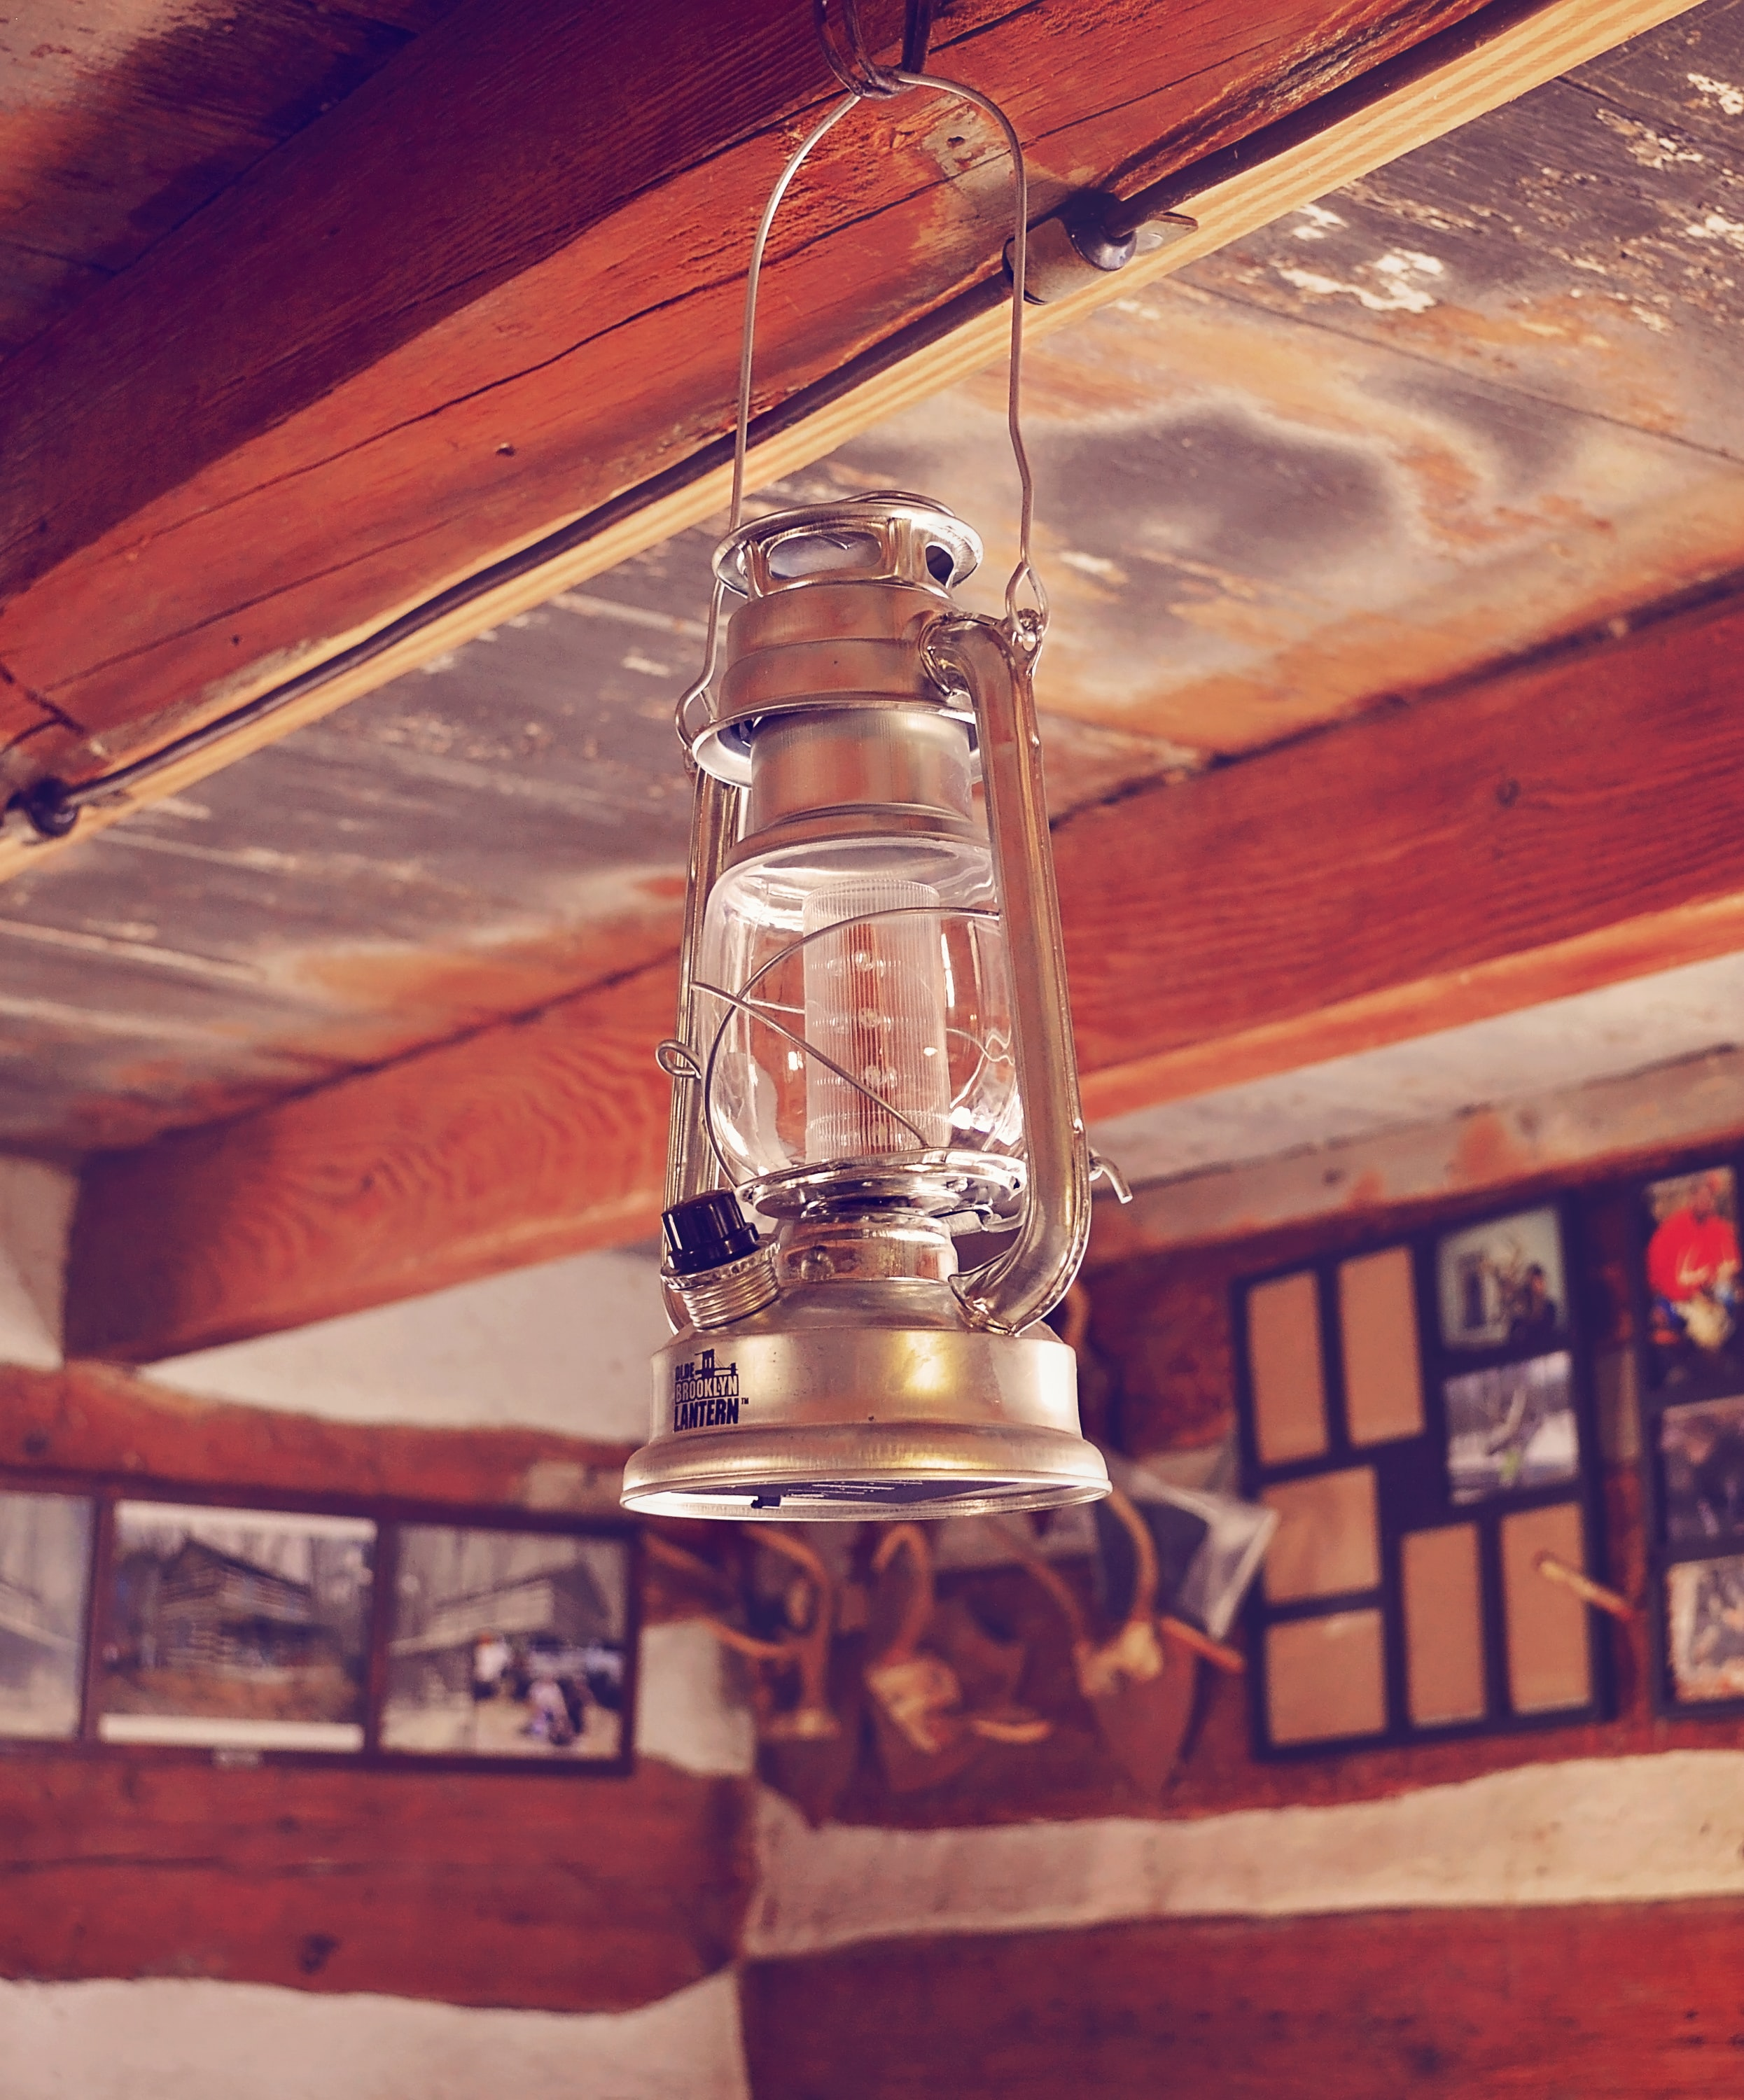 gray steel gas lantern hanged on ceiling